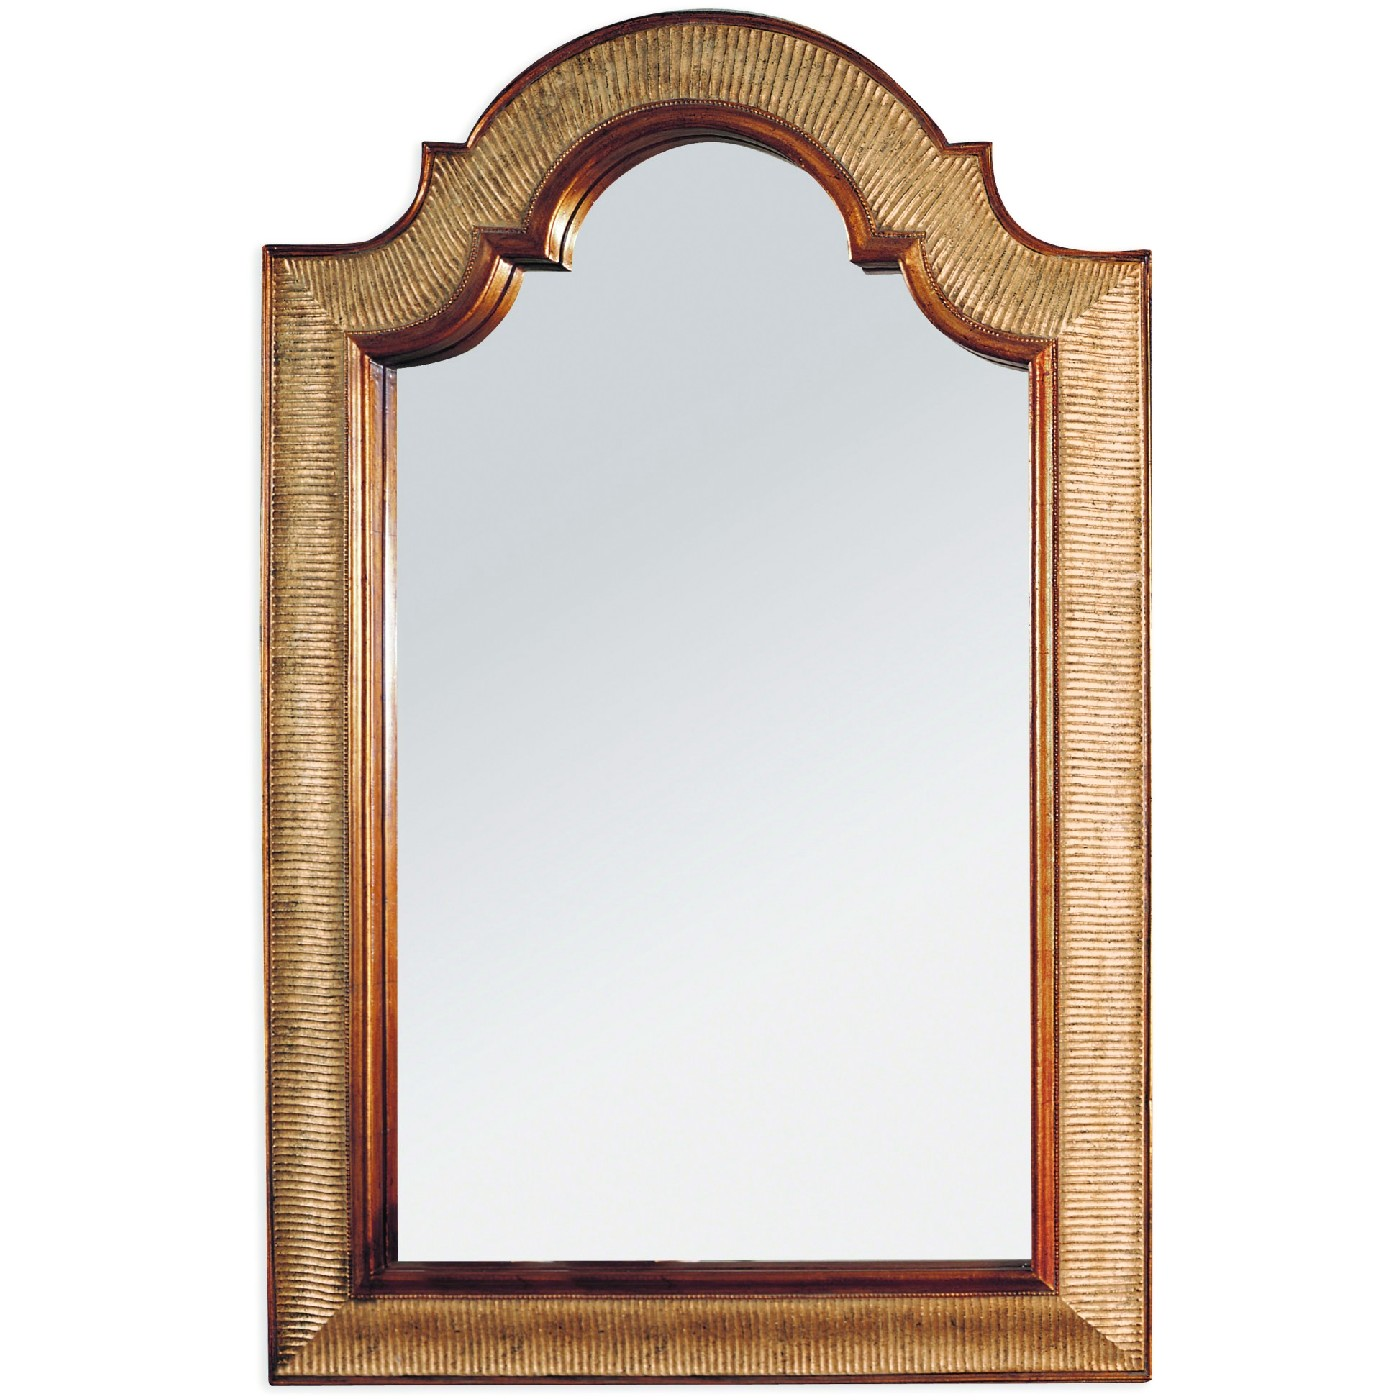 Excelsior ornate traditional wall mirror 6331 032ec for Traditional mirror